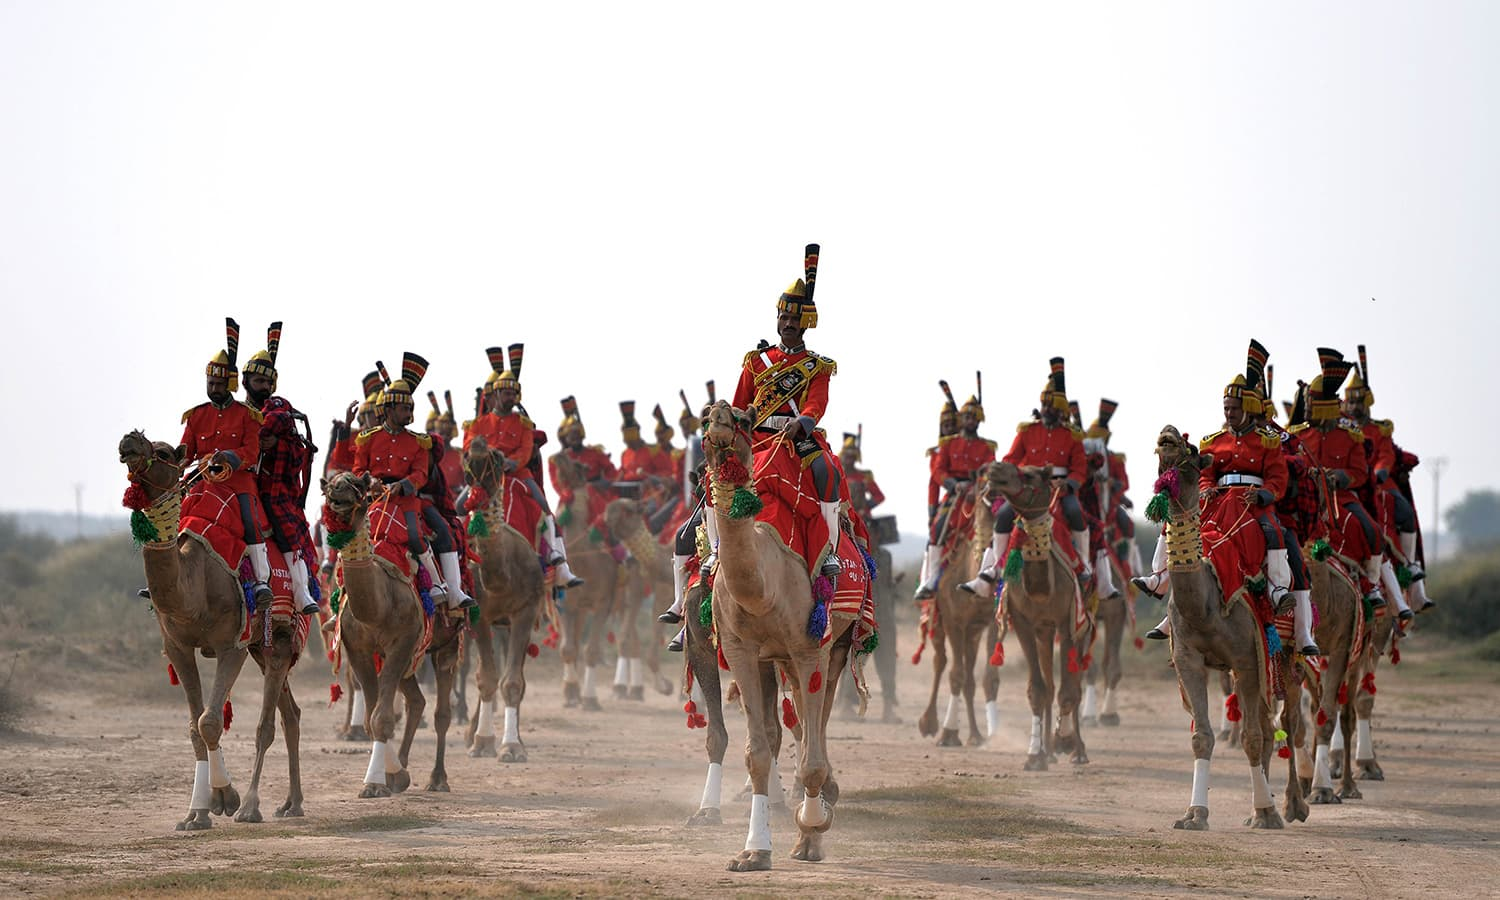 In this photograph taken on November 13, 2015, Band Major of Pakistan Desert Rangers, Muhammad Iqbal (C) leads while conducting team members mounted on camels during the march in Moj Garh, 100 kilometres east of the city of Bahawalpur in Punjab province. —AFP